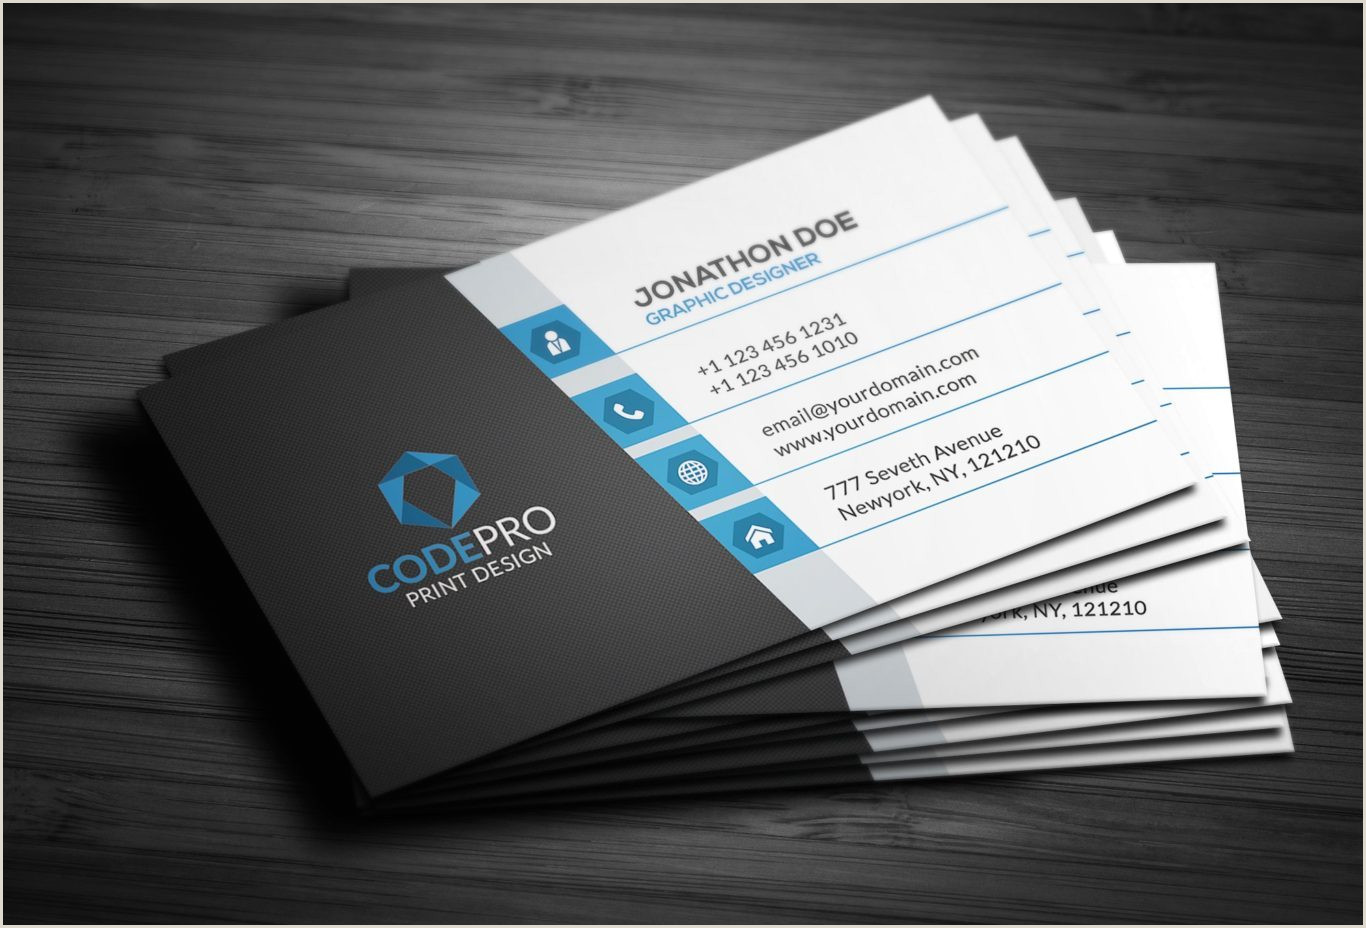 What Information Goes On A Business Card What Information To Put On A Business Card Blog